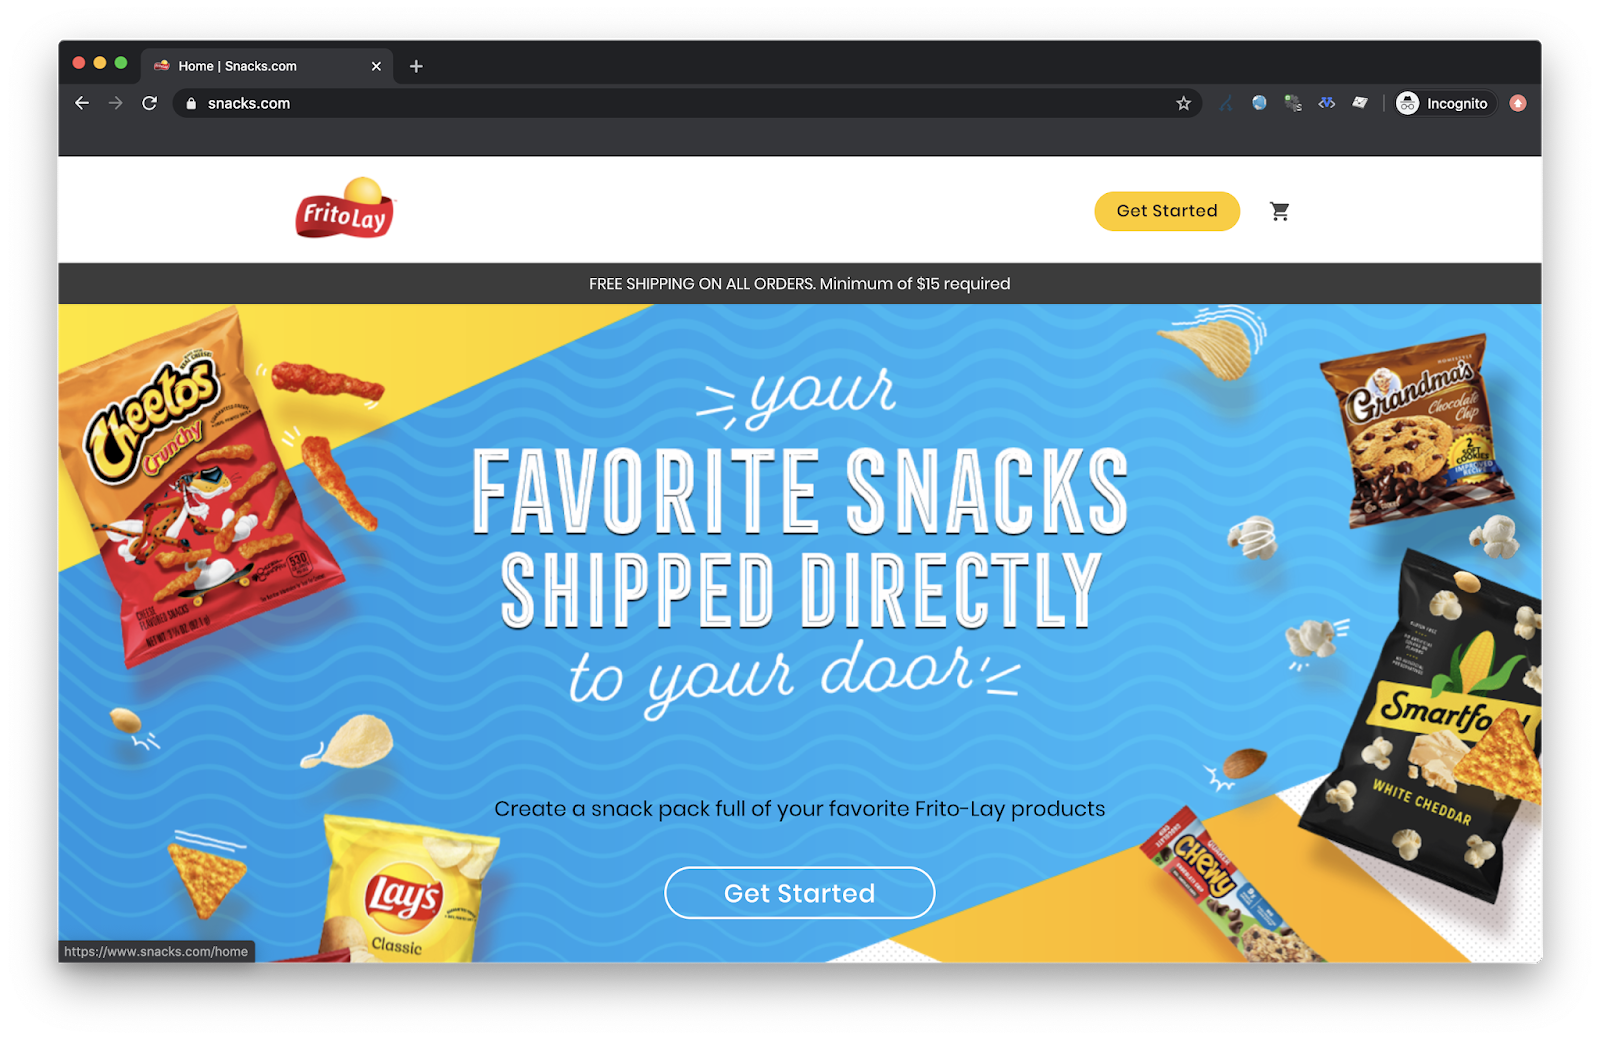 Frito Lay ships snacks home through snacks.com